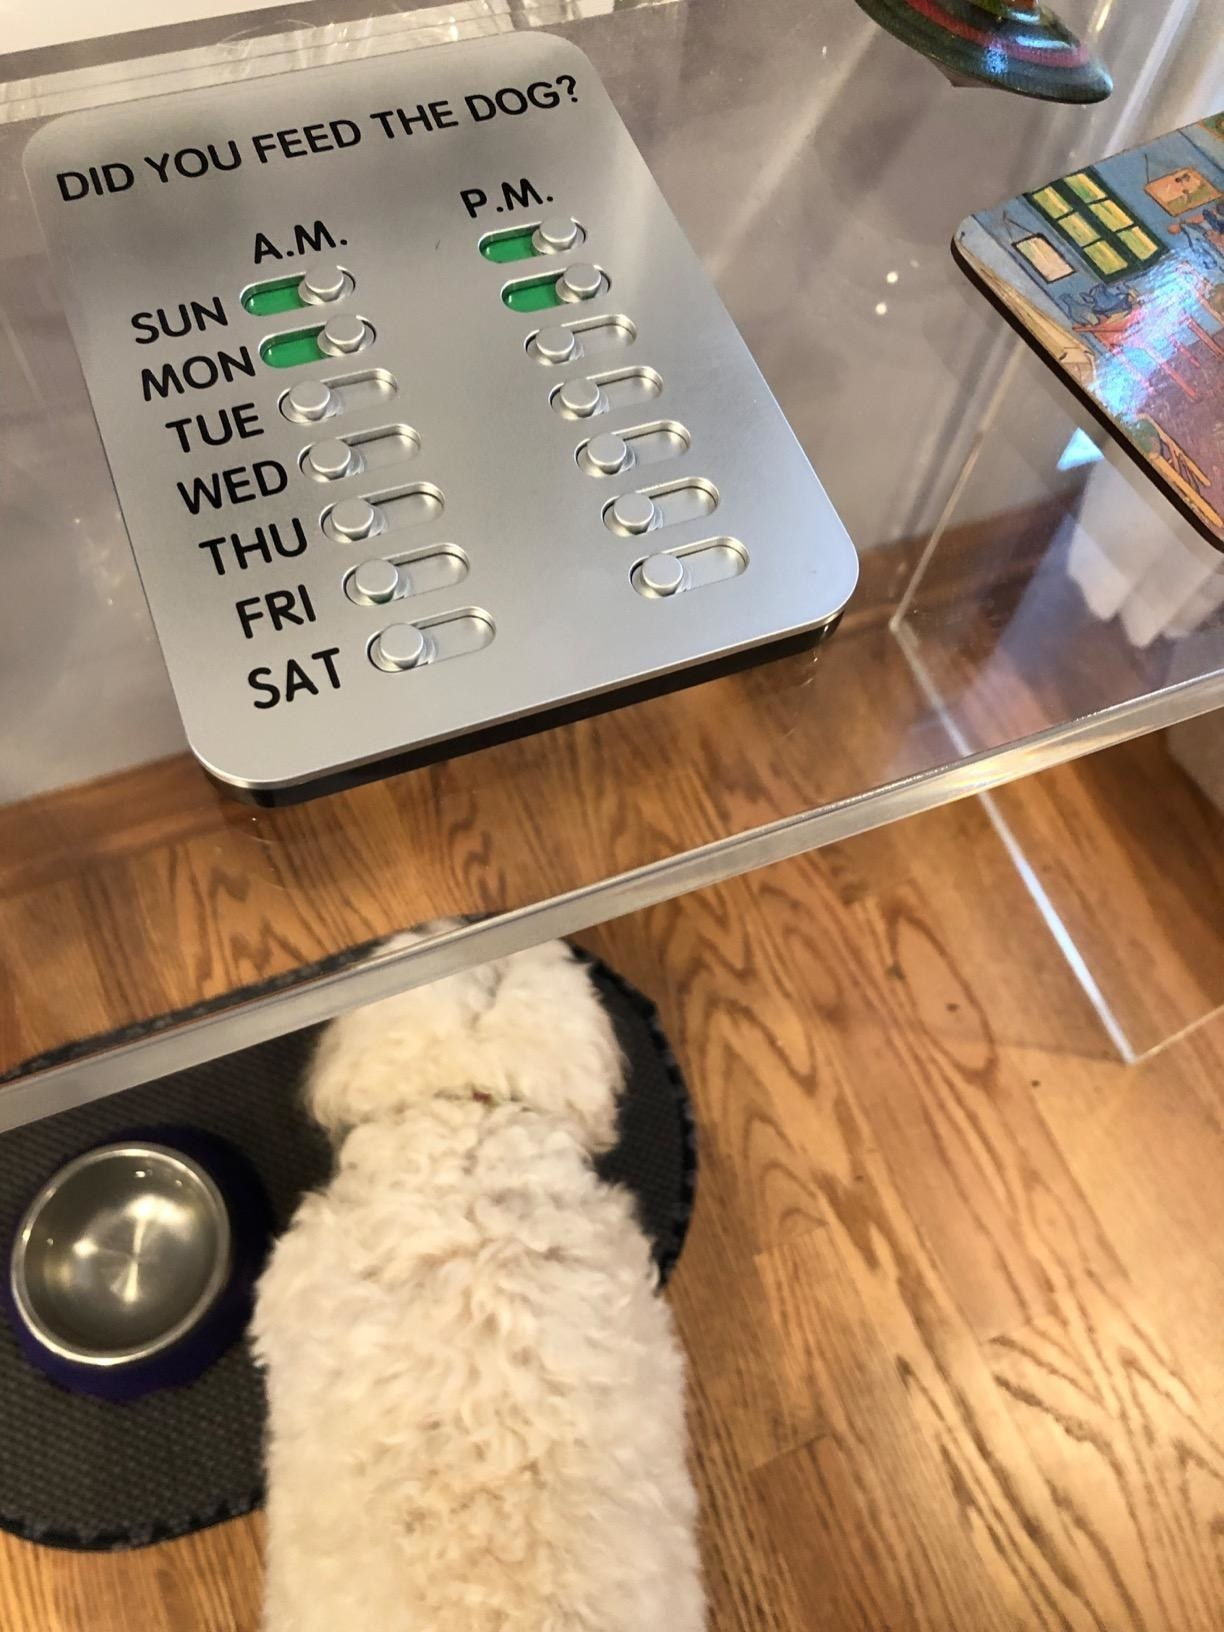 The a.m. p.m. feeding system sat on a table above a dog eating